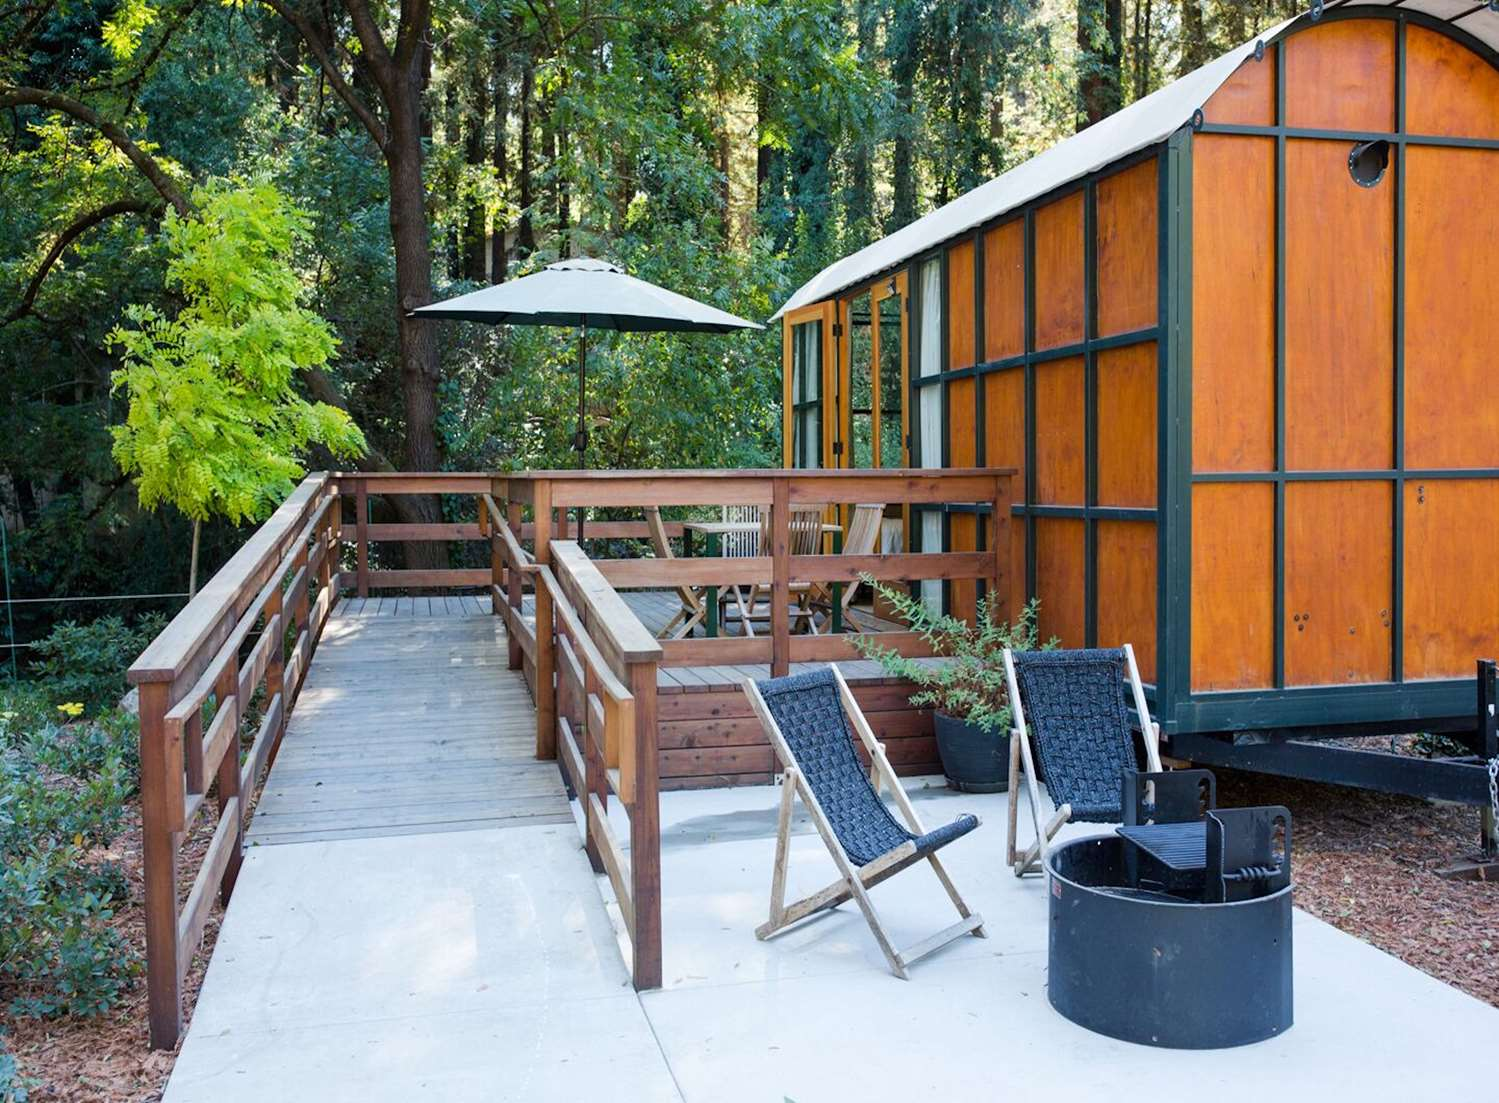 Other - AutoCamp Russian River Campground Guerneville